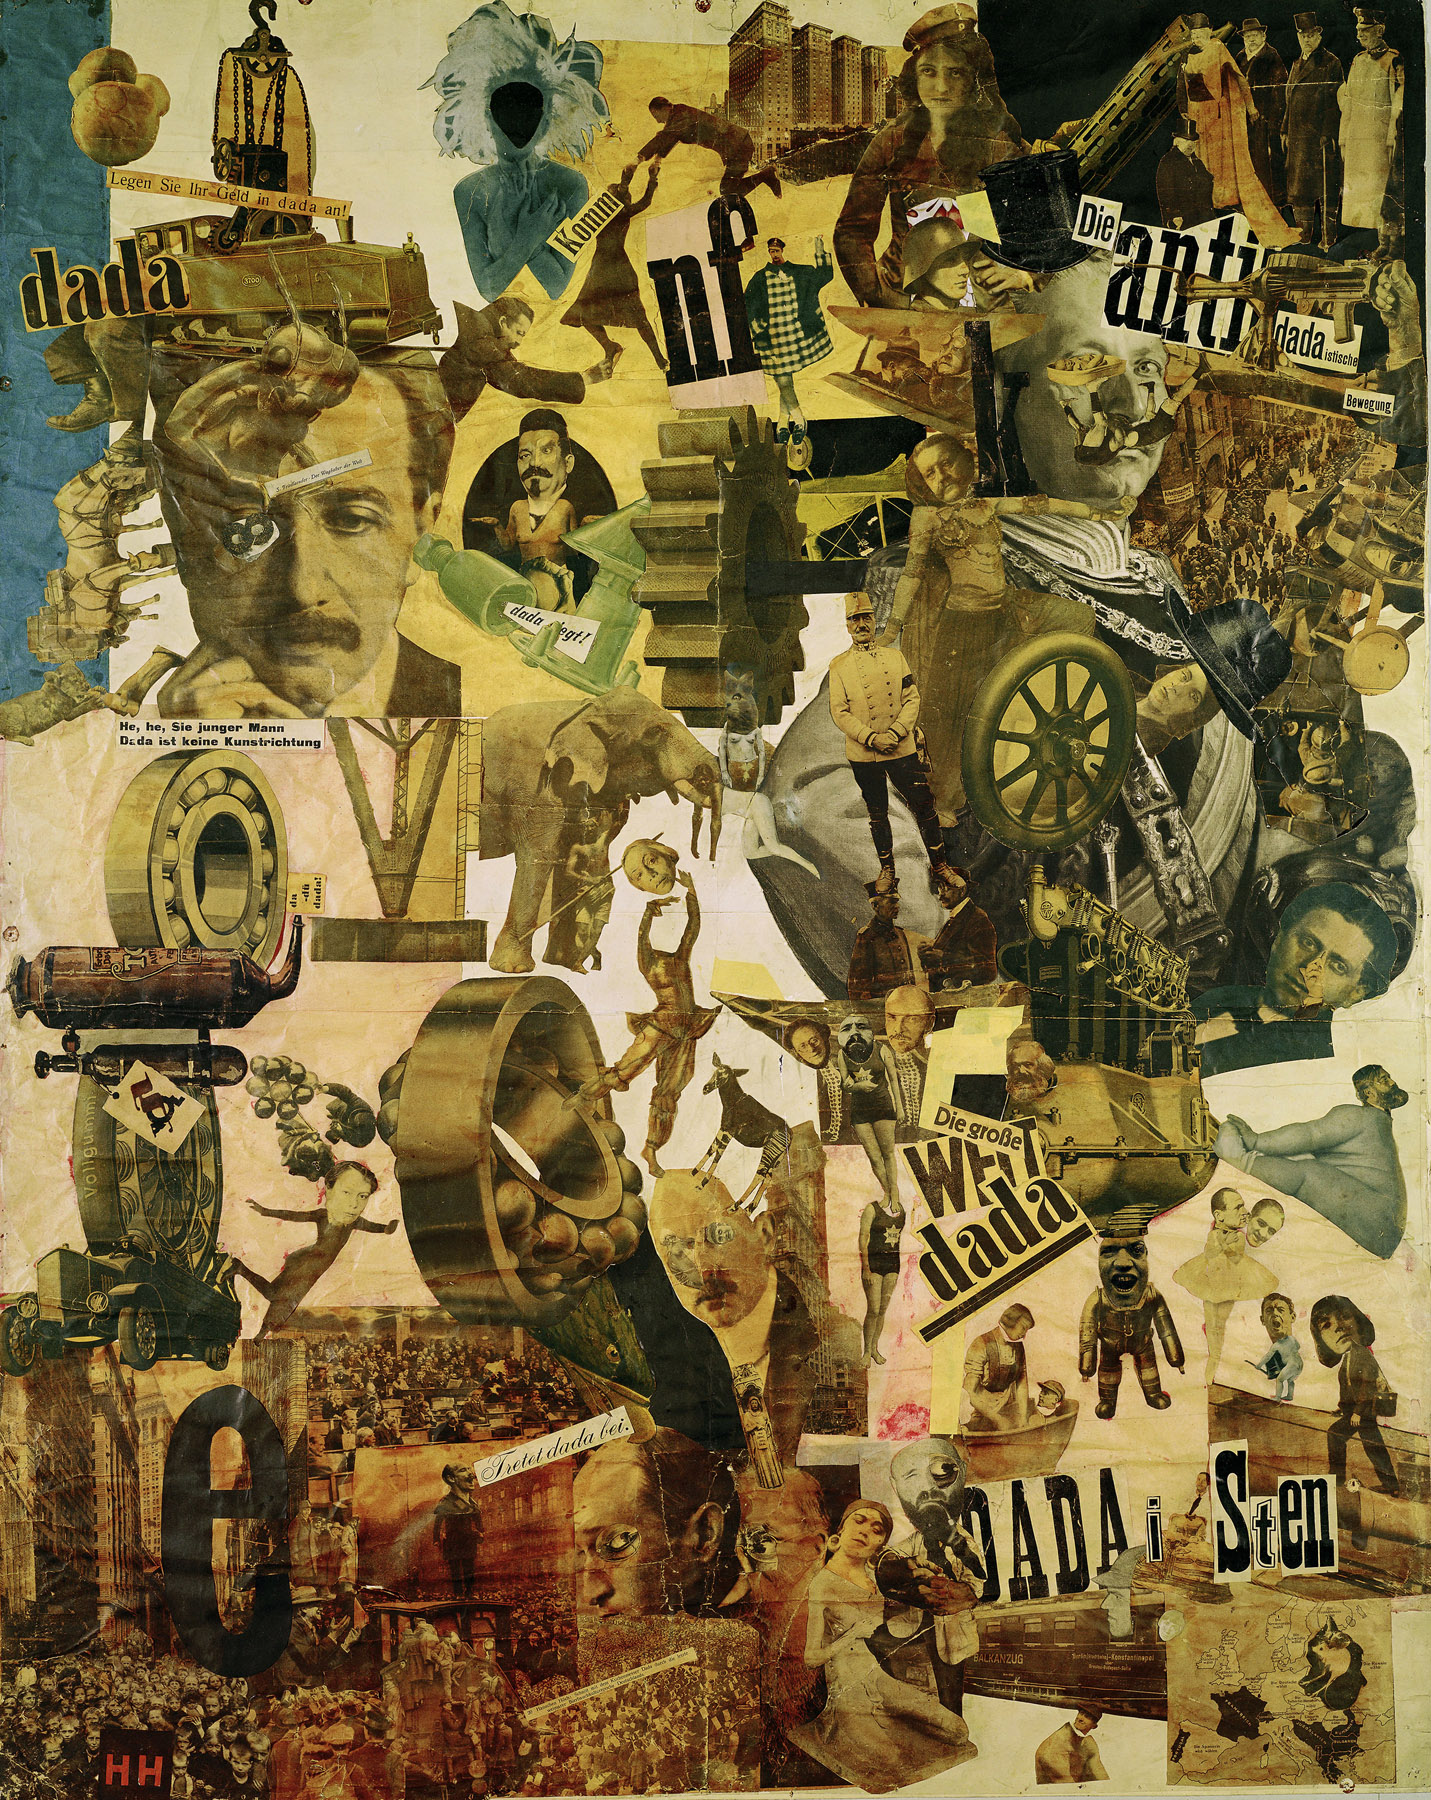 Cut with the Kitchen Knife, collage by Hannah Höch